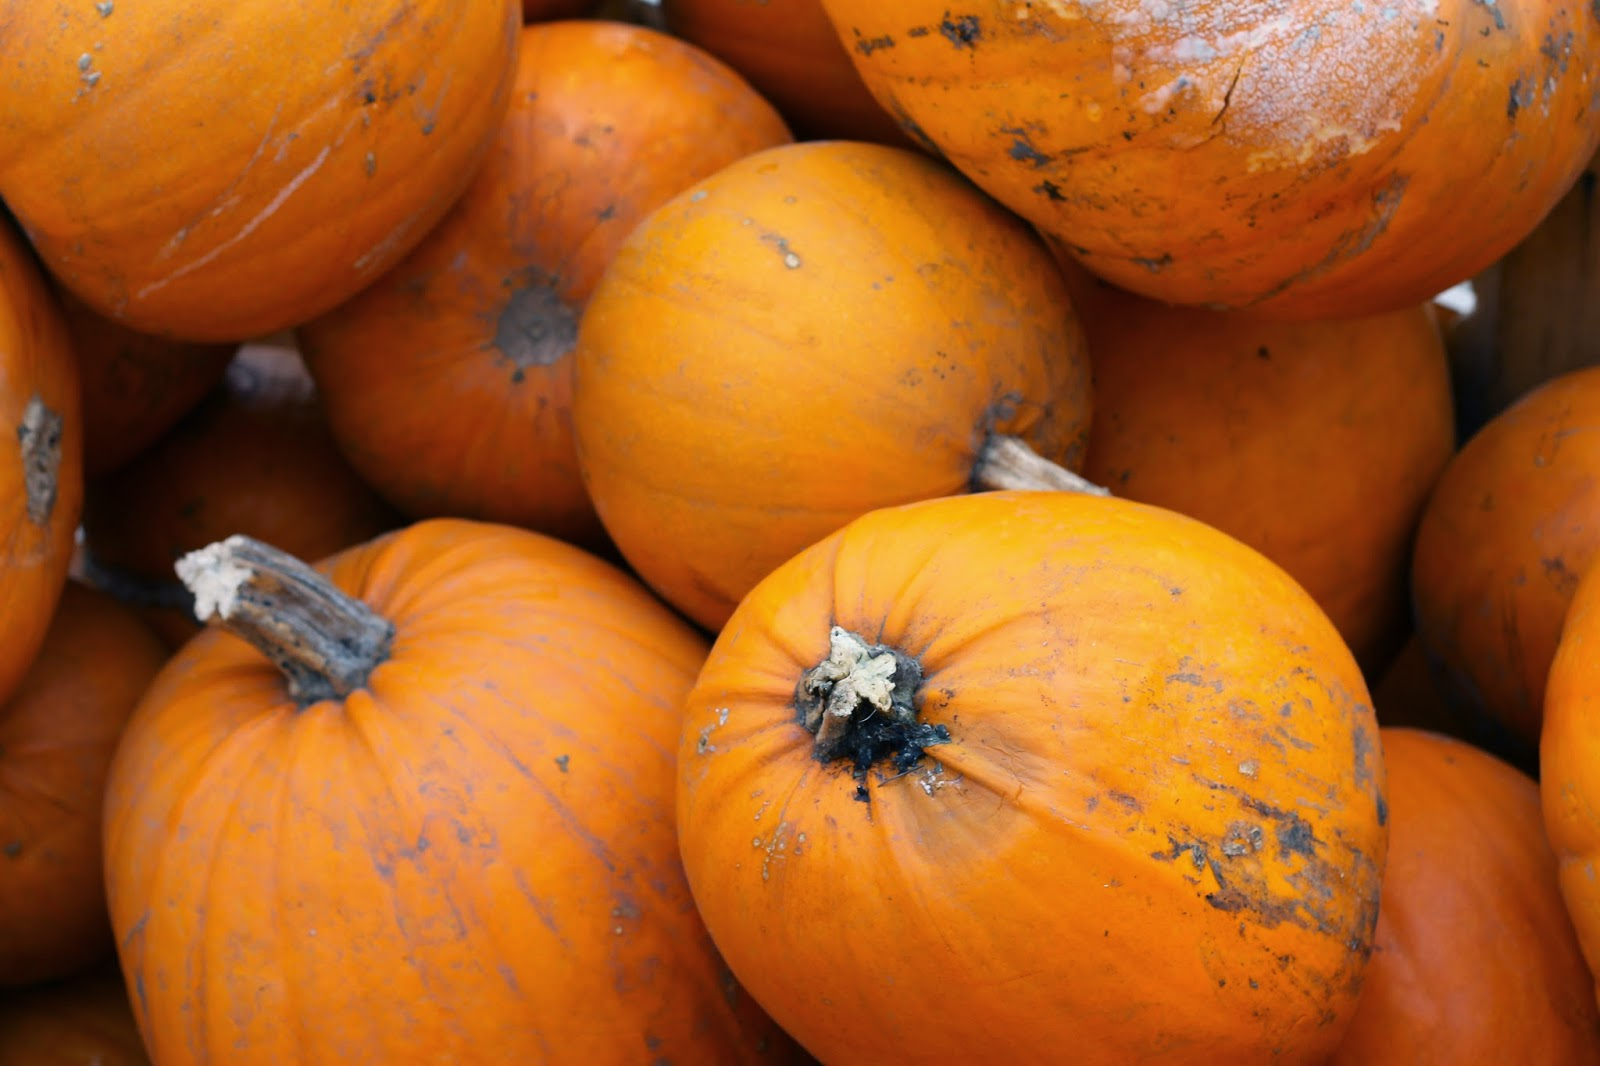 Apley Farm Pumpkins